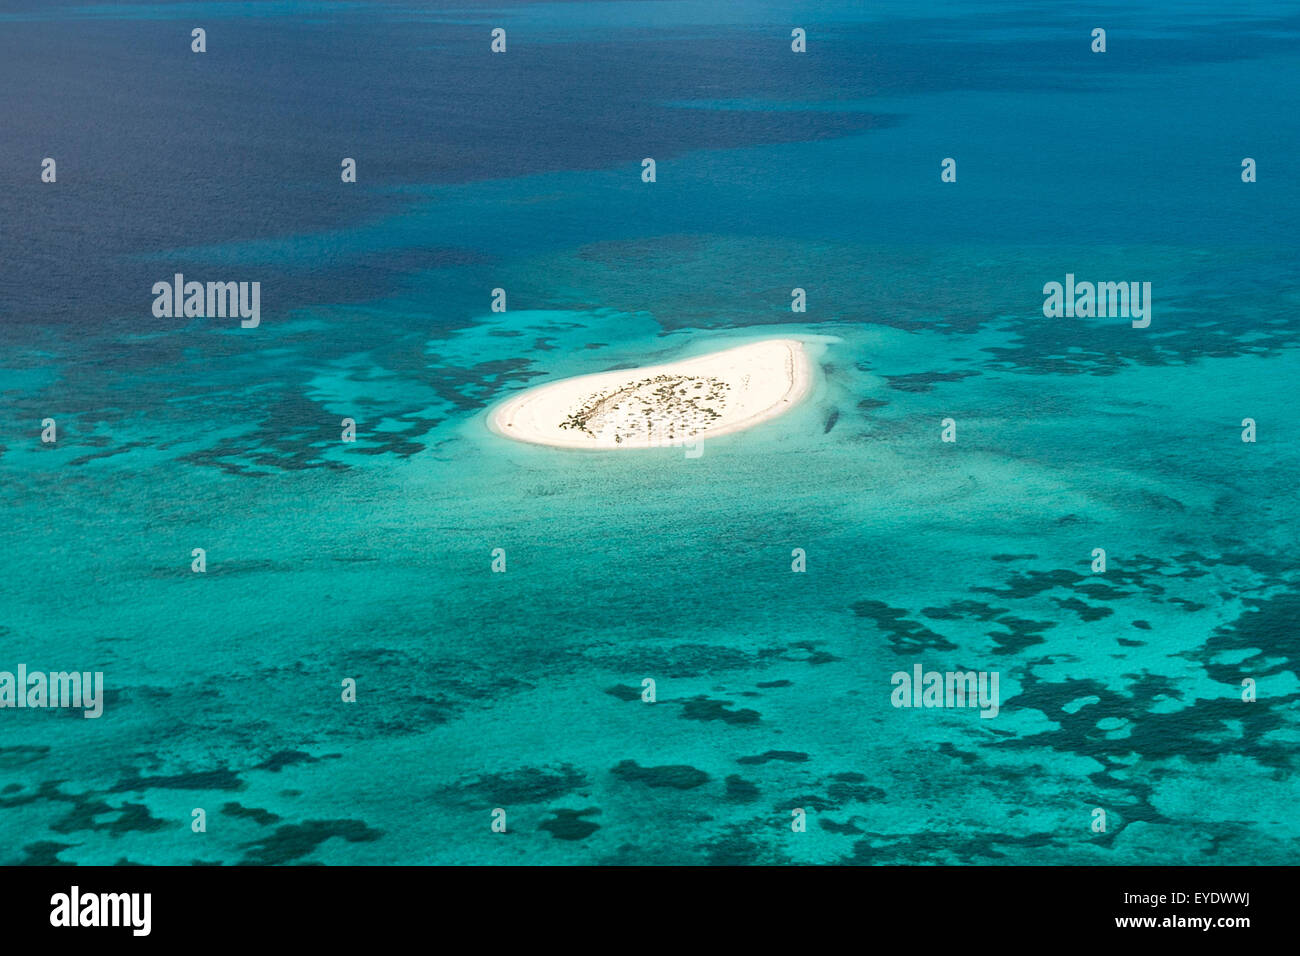 Aerial view of hospital key dry tortugas national park florida stock photo royalty free image for Garden key dry tortugas national park